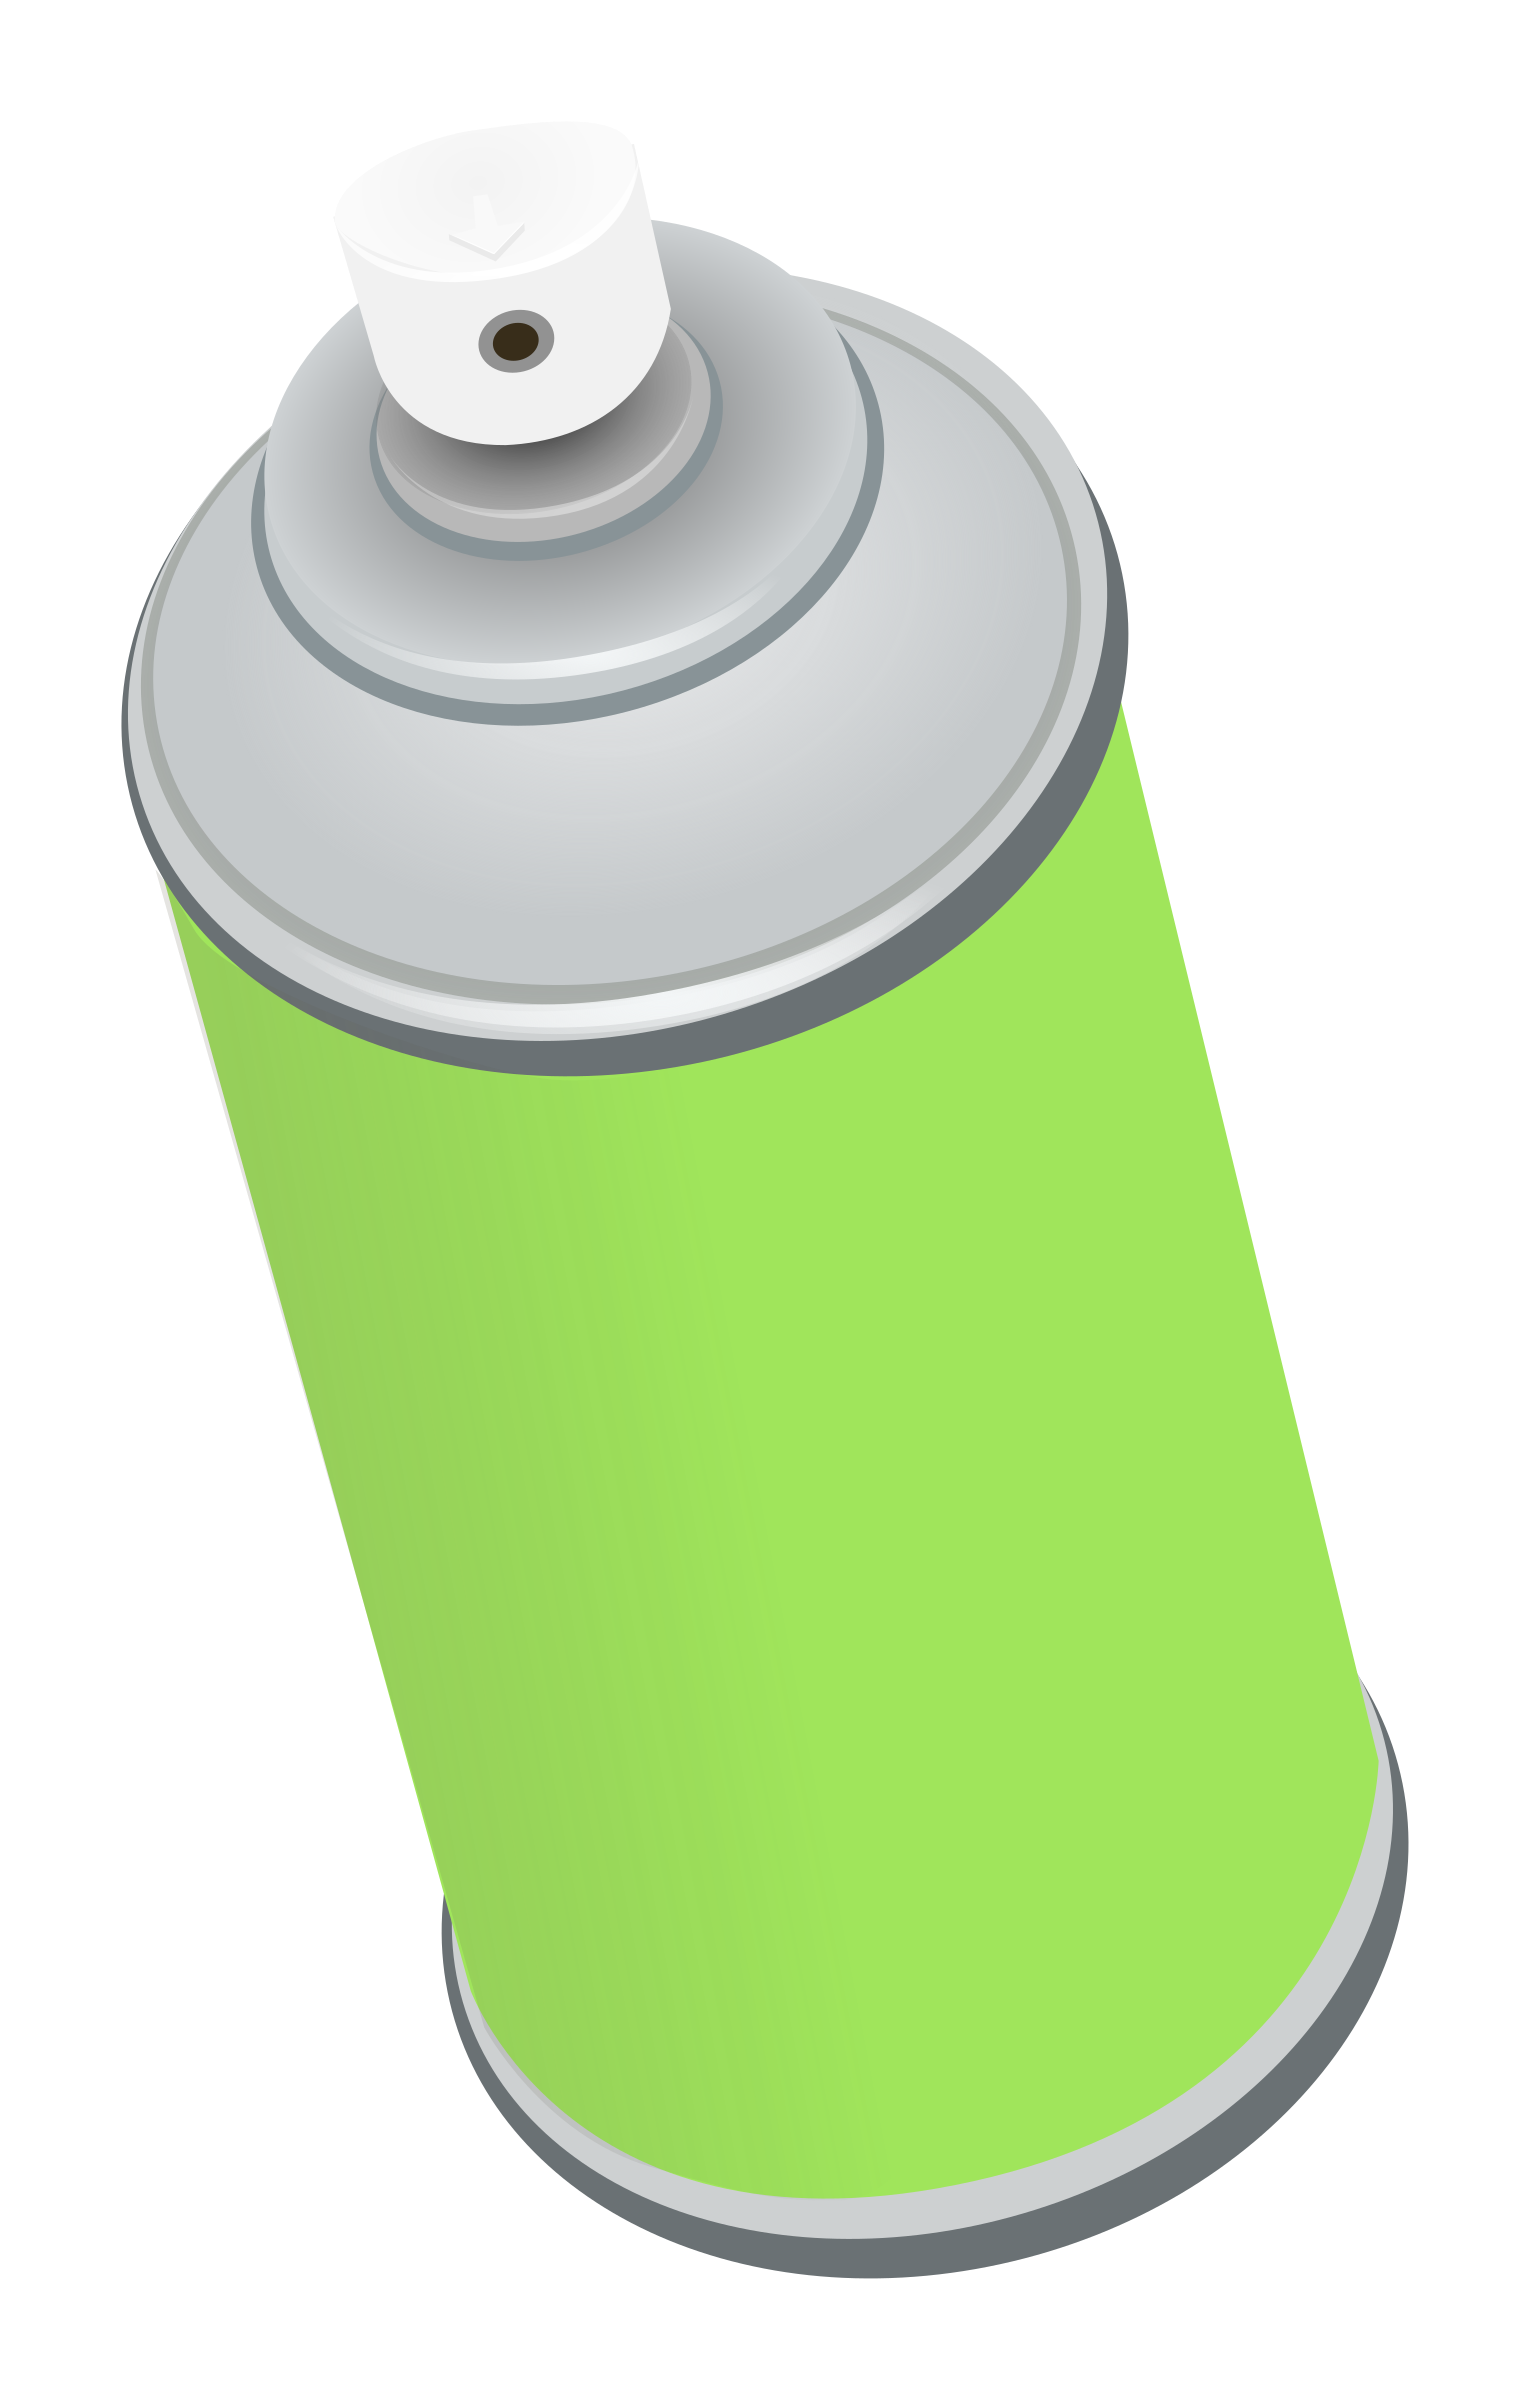 Spray Can Clipart - ClipArt Best